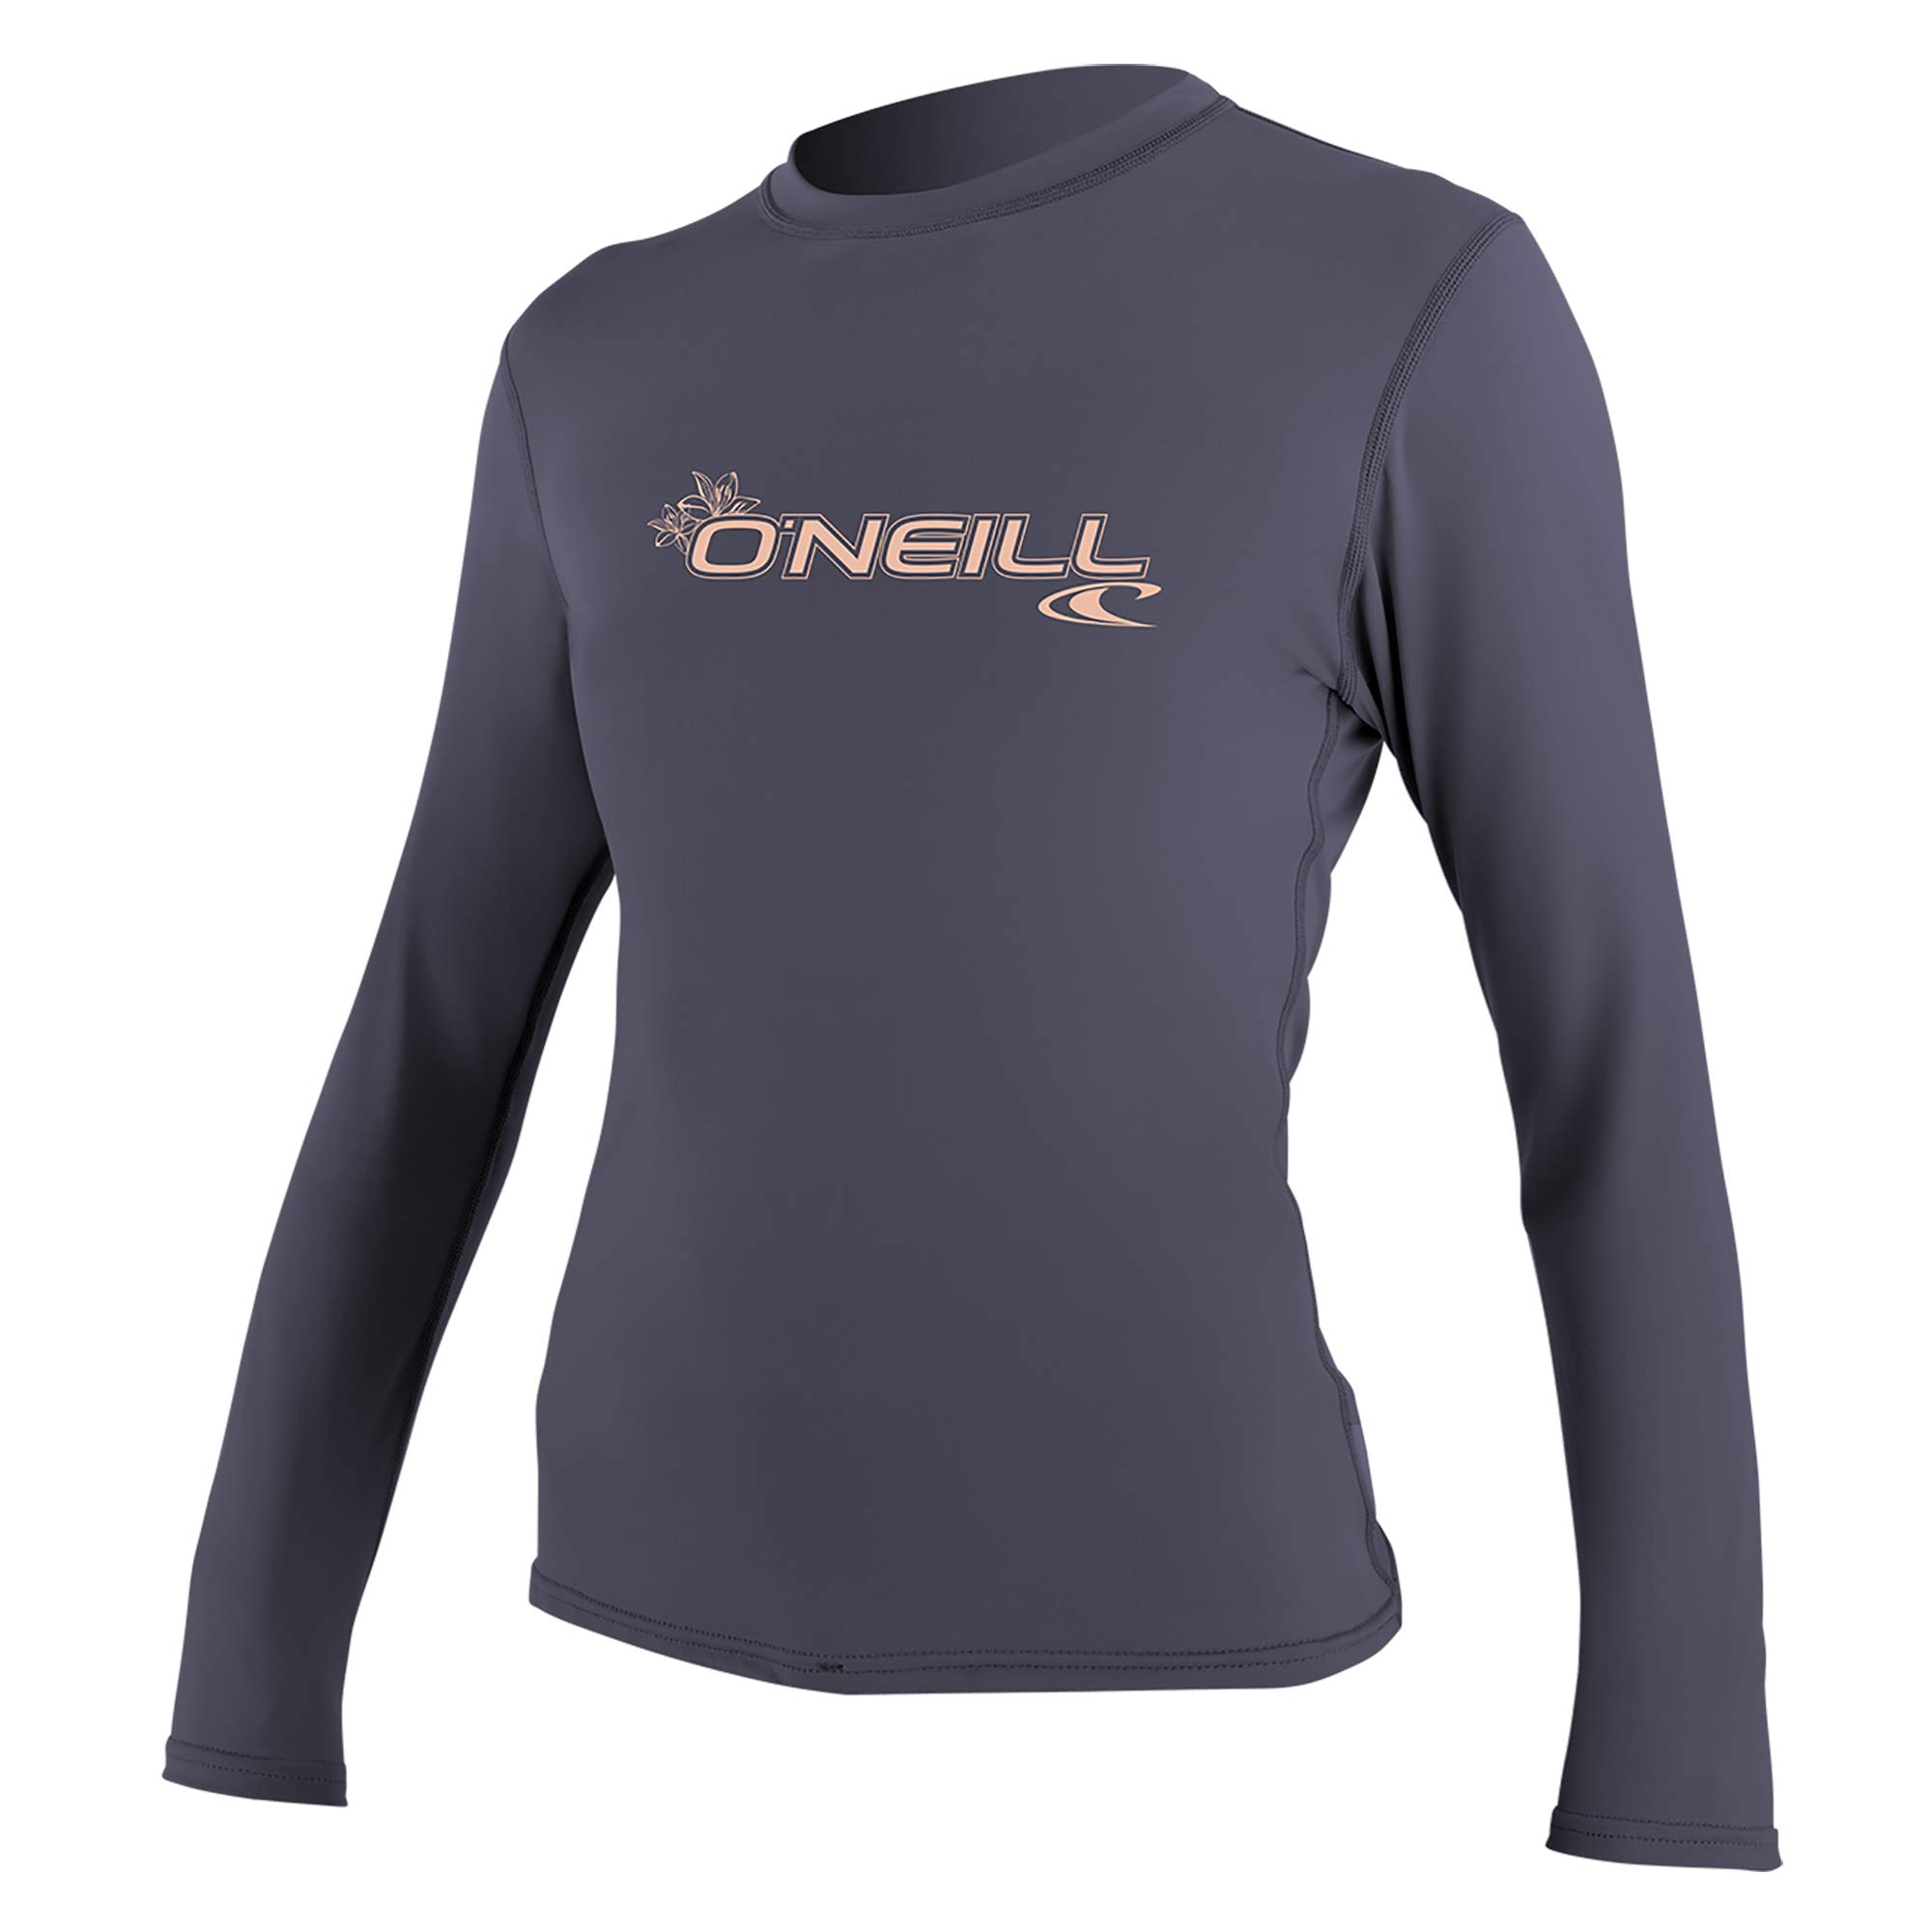 O'Neill Wetsuits Women's Basic 50+ Long Sleeve Sun Shirt, Dusk, X-Large by O'Neill Wetsuits